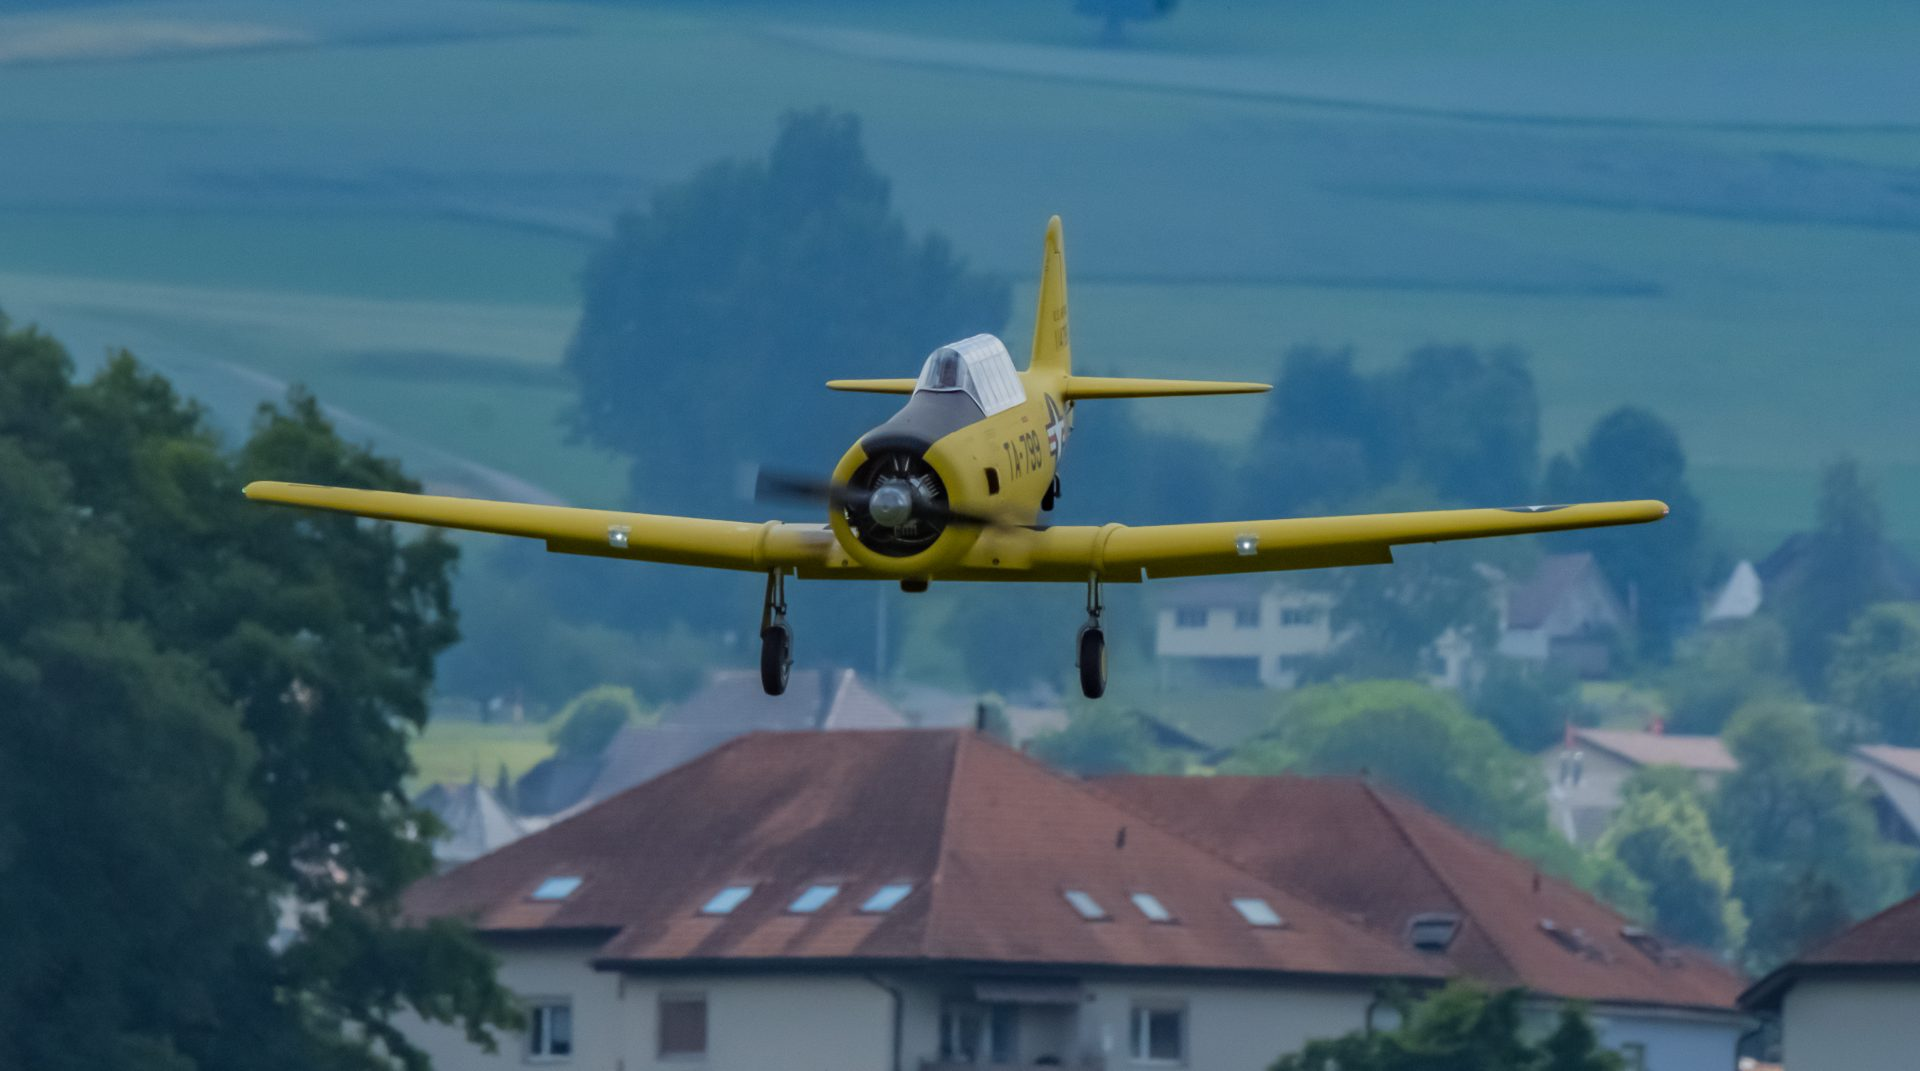 IG Warbird Switzerland